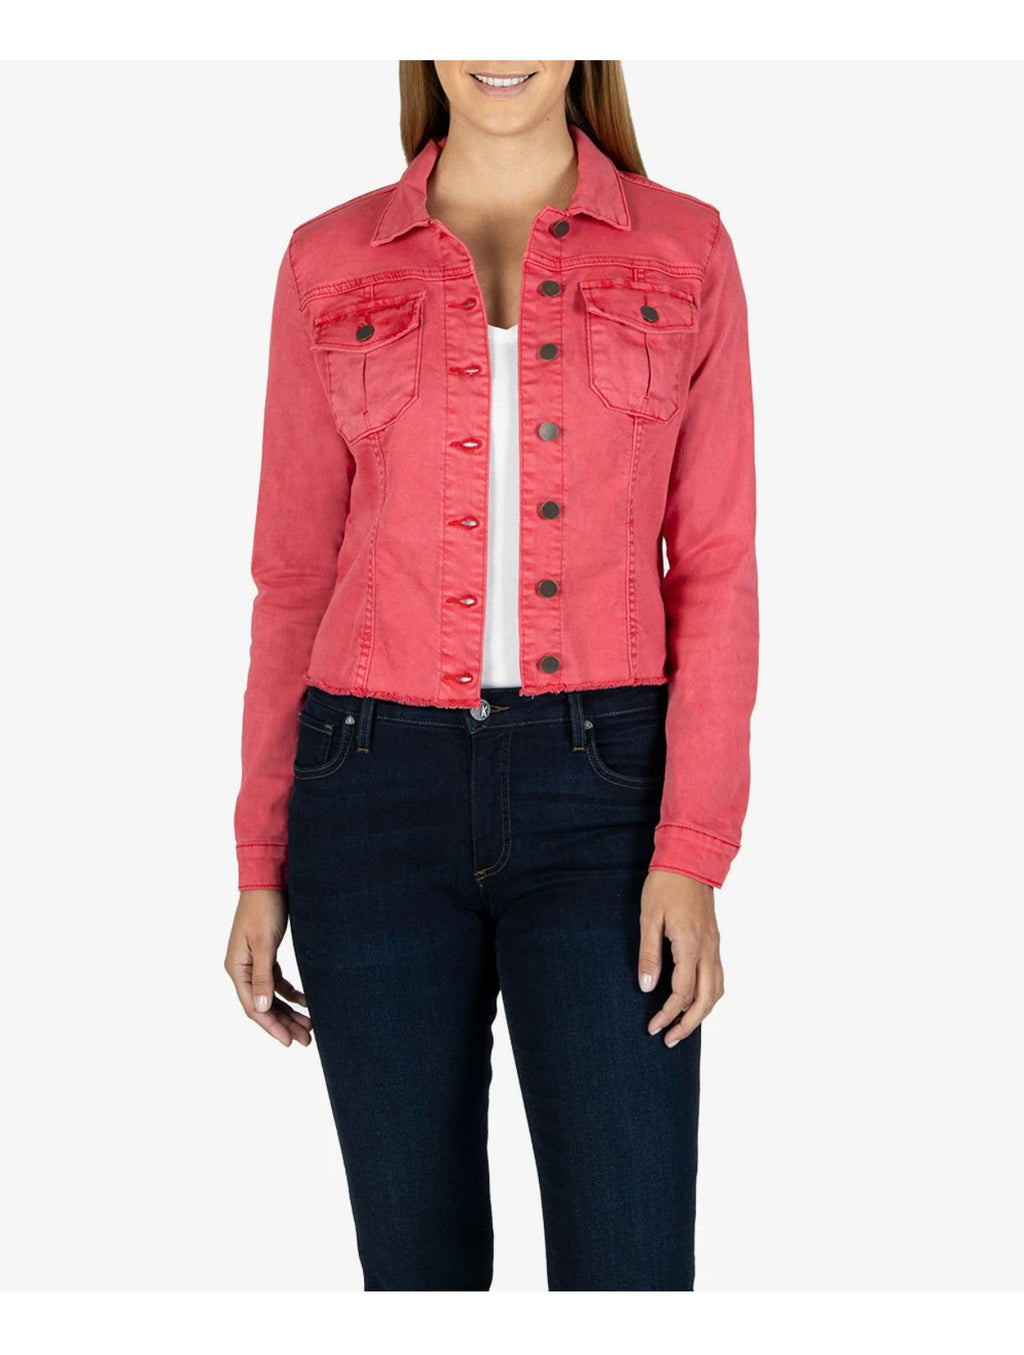 Kut Kara Jacket in Strawberry